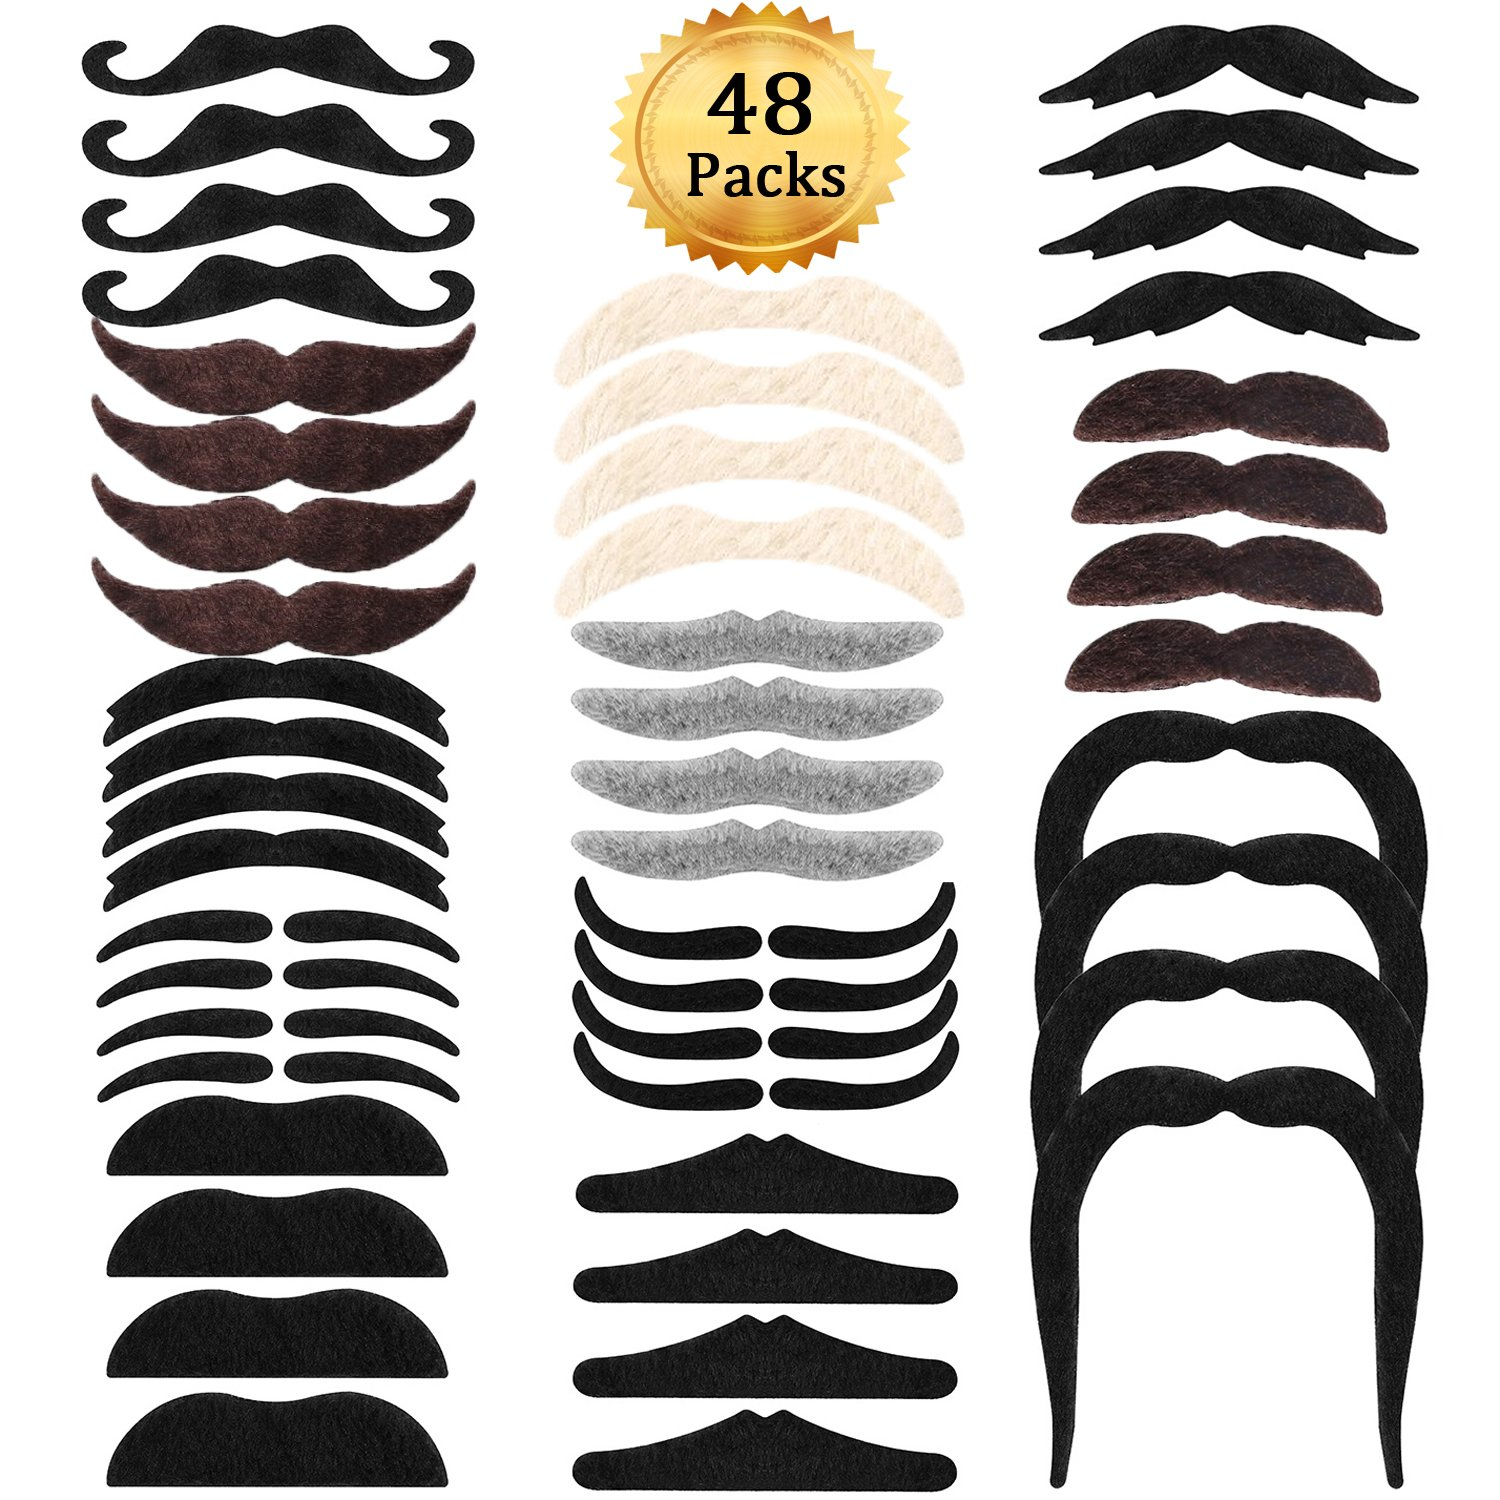 Whaline 48 Pieces Fake Mustaches Self Adhesive Novelty Mustaches Party Favors Costume Performance